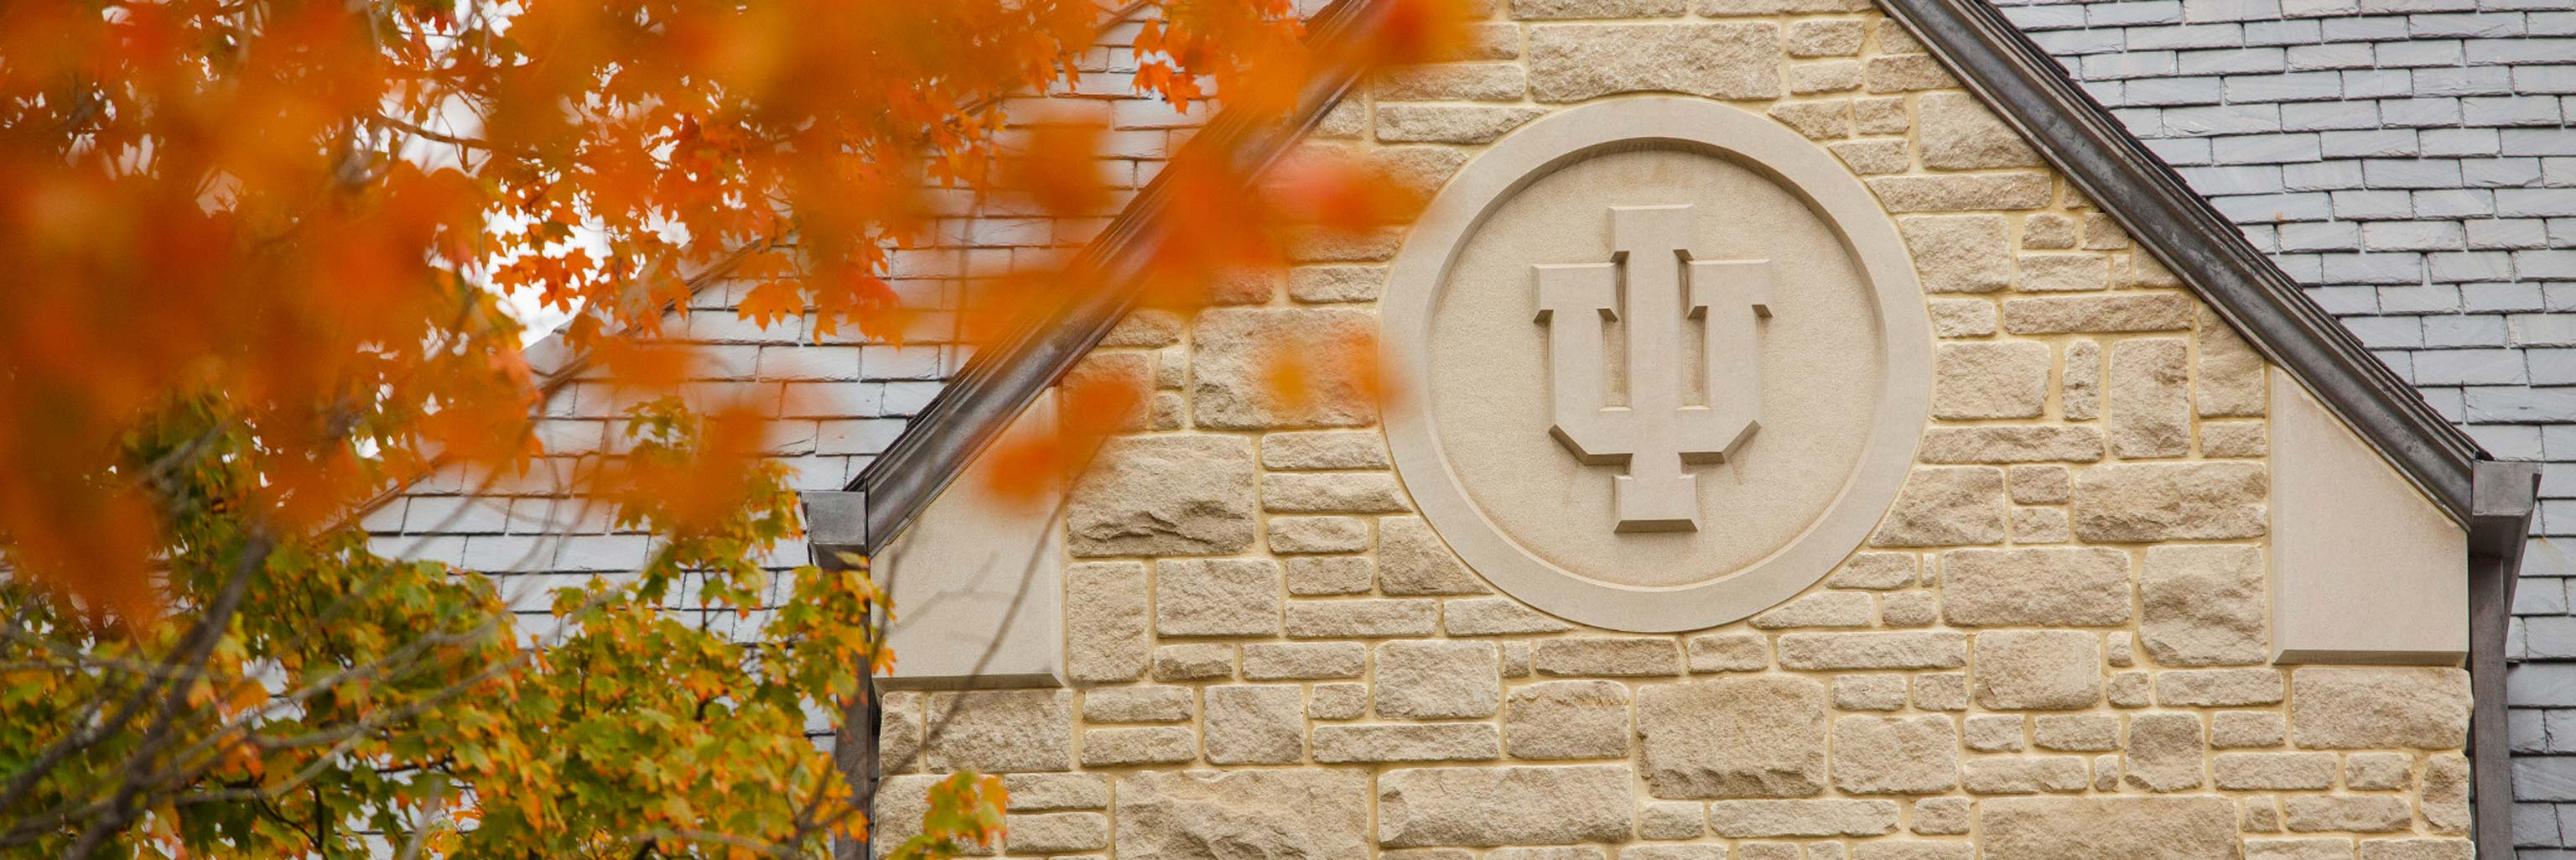 Indiana University seal carved into the side of a building